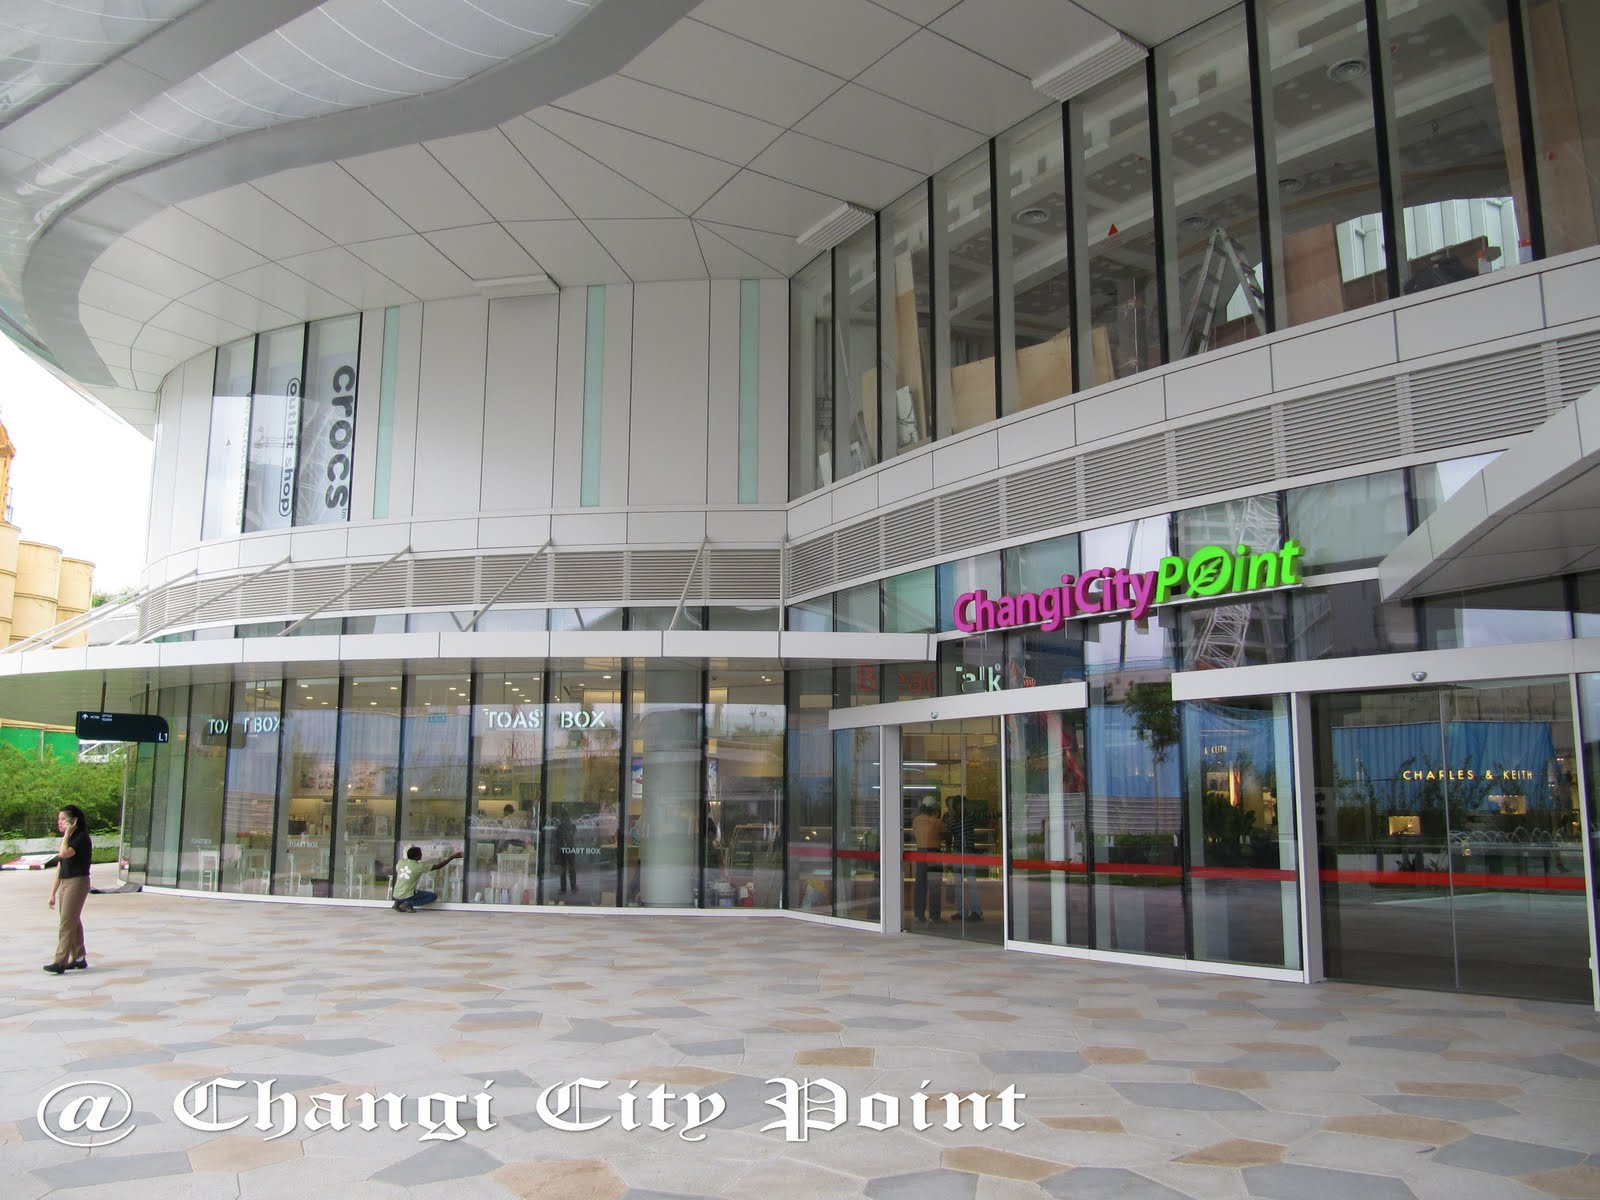 Changi City Point #; ; am to pm (Mon - Fri, PH & eve of PH) 8am to pm (Sat, Sun & PH) Food & Restaurants ; Digital Gift Card.